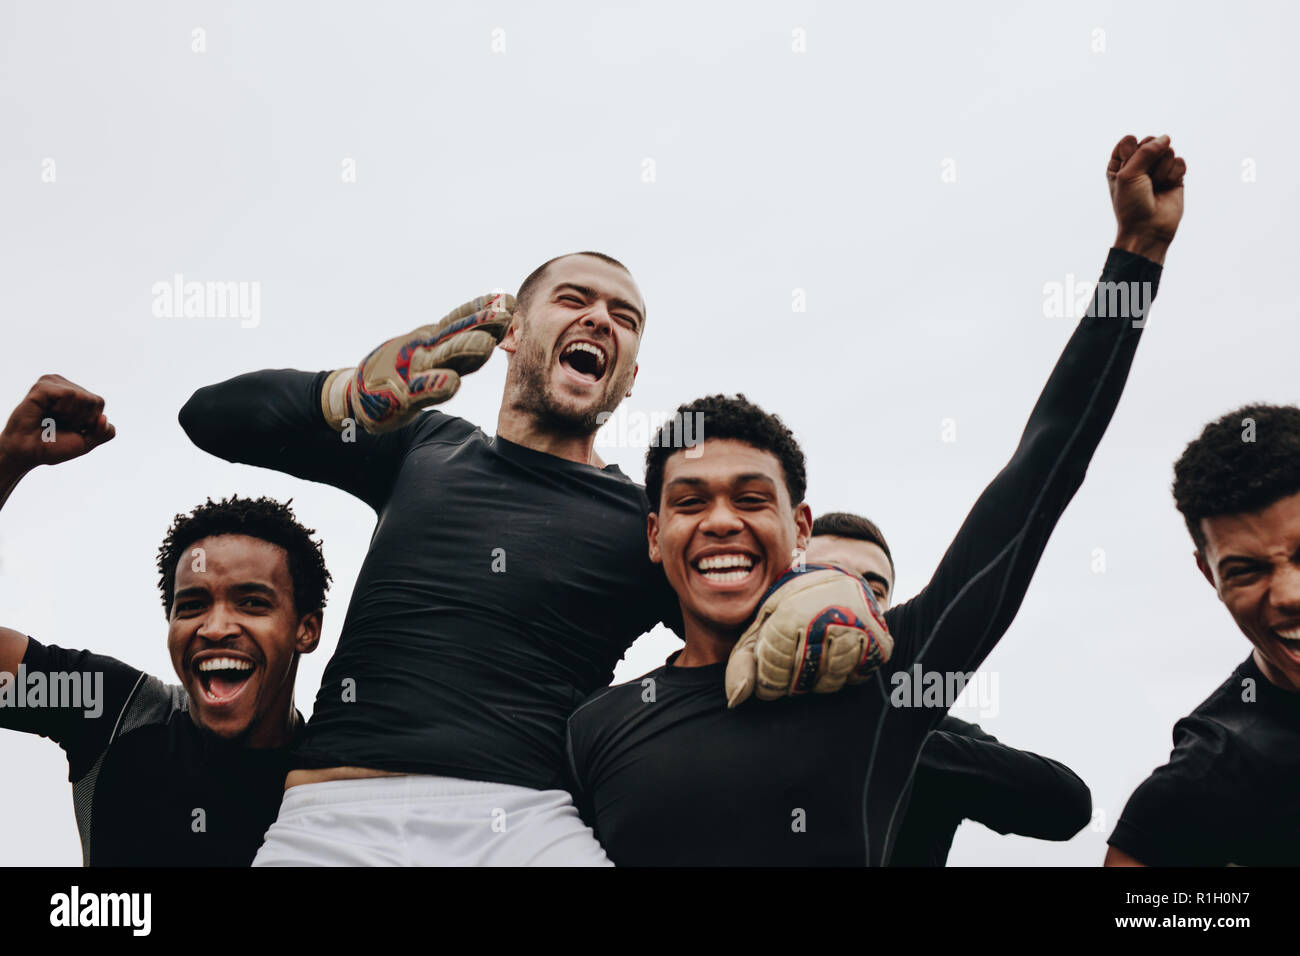 Low angle view of players carrying their teammate on shoulders celebrating success. Group of happy soccer players celebrating a win. - Stock Image